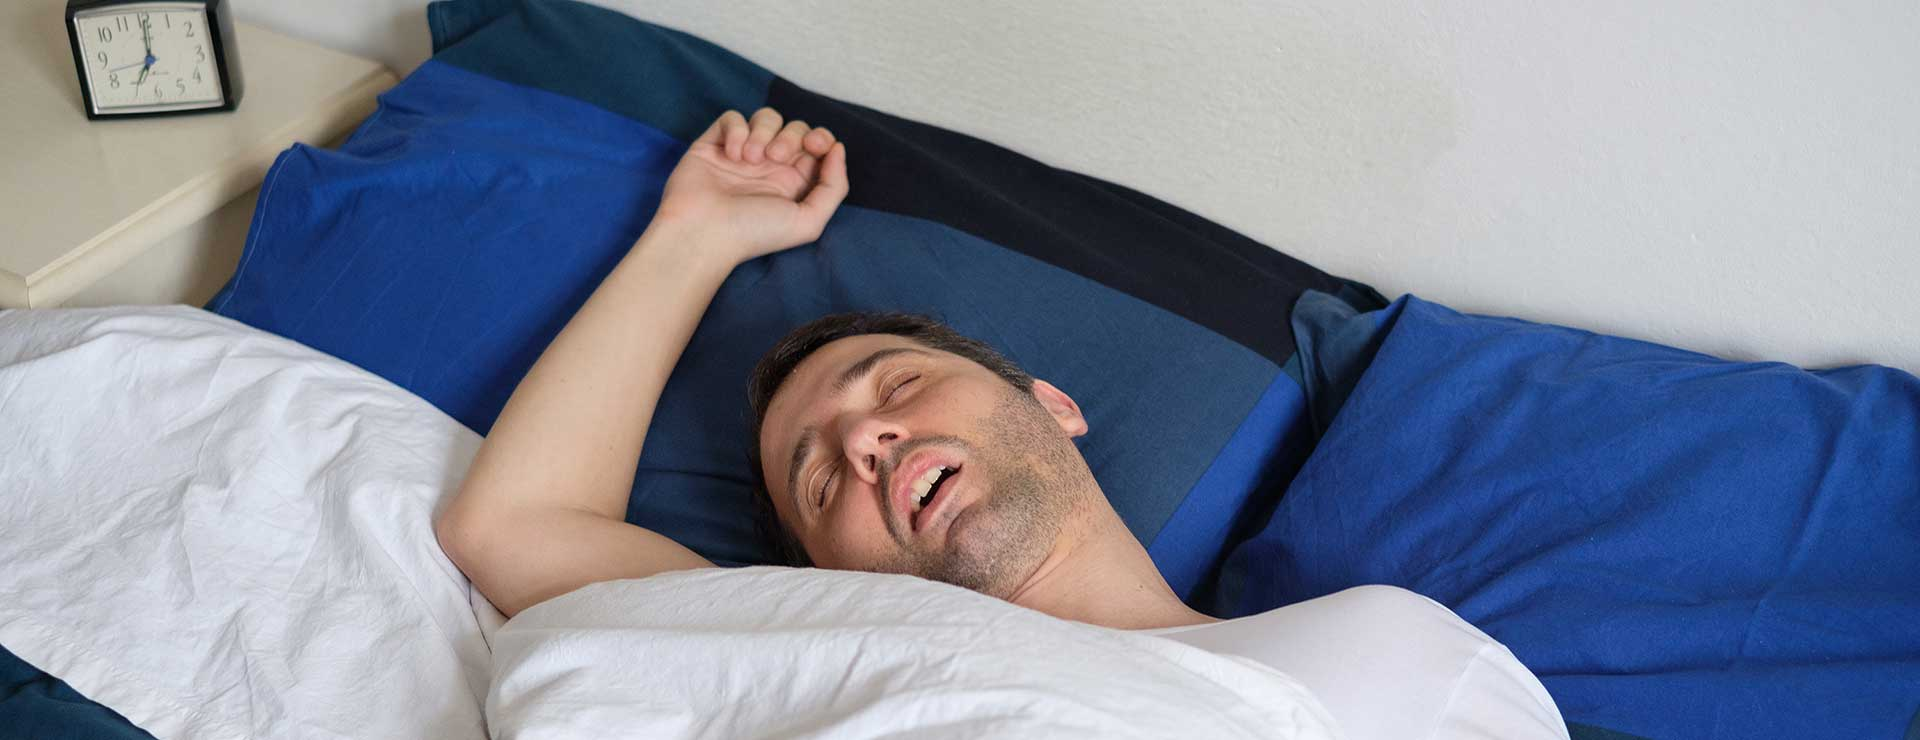 Why Do People Snore? Answers for Better Health | Johns